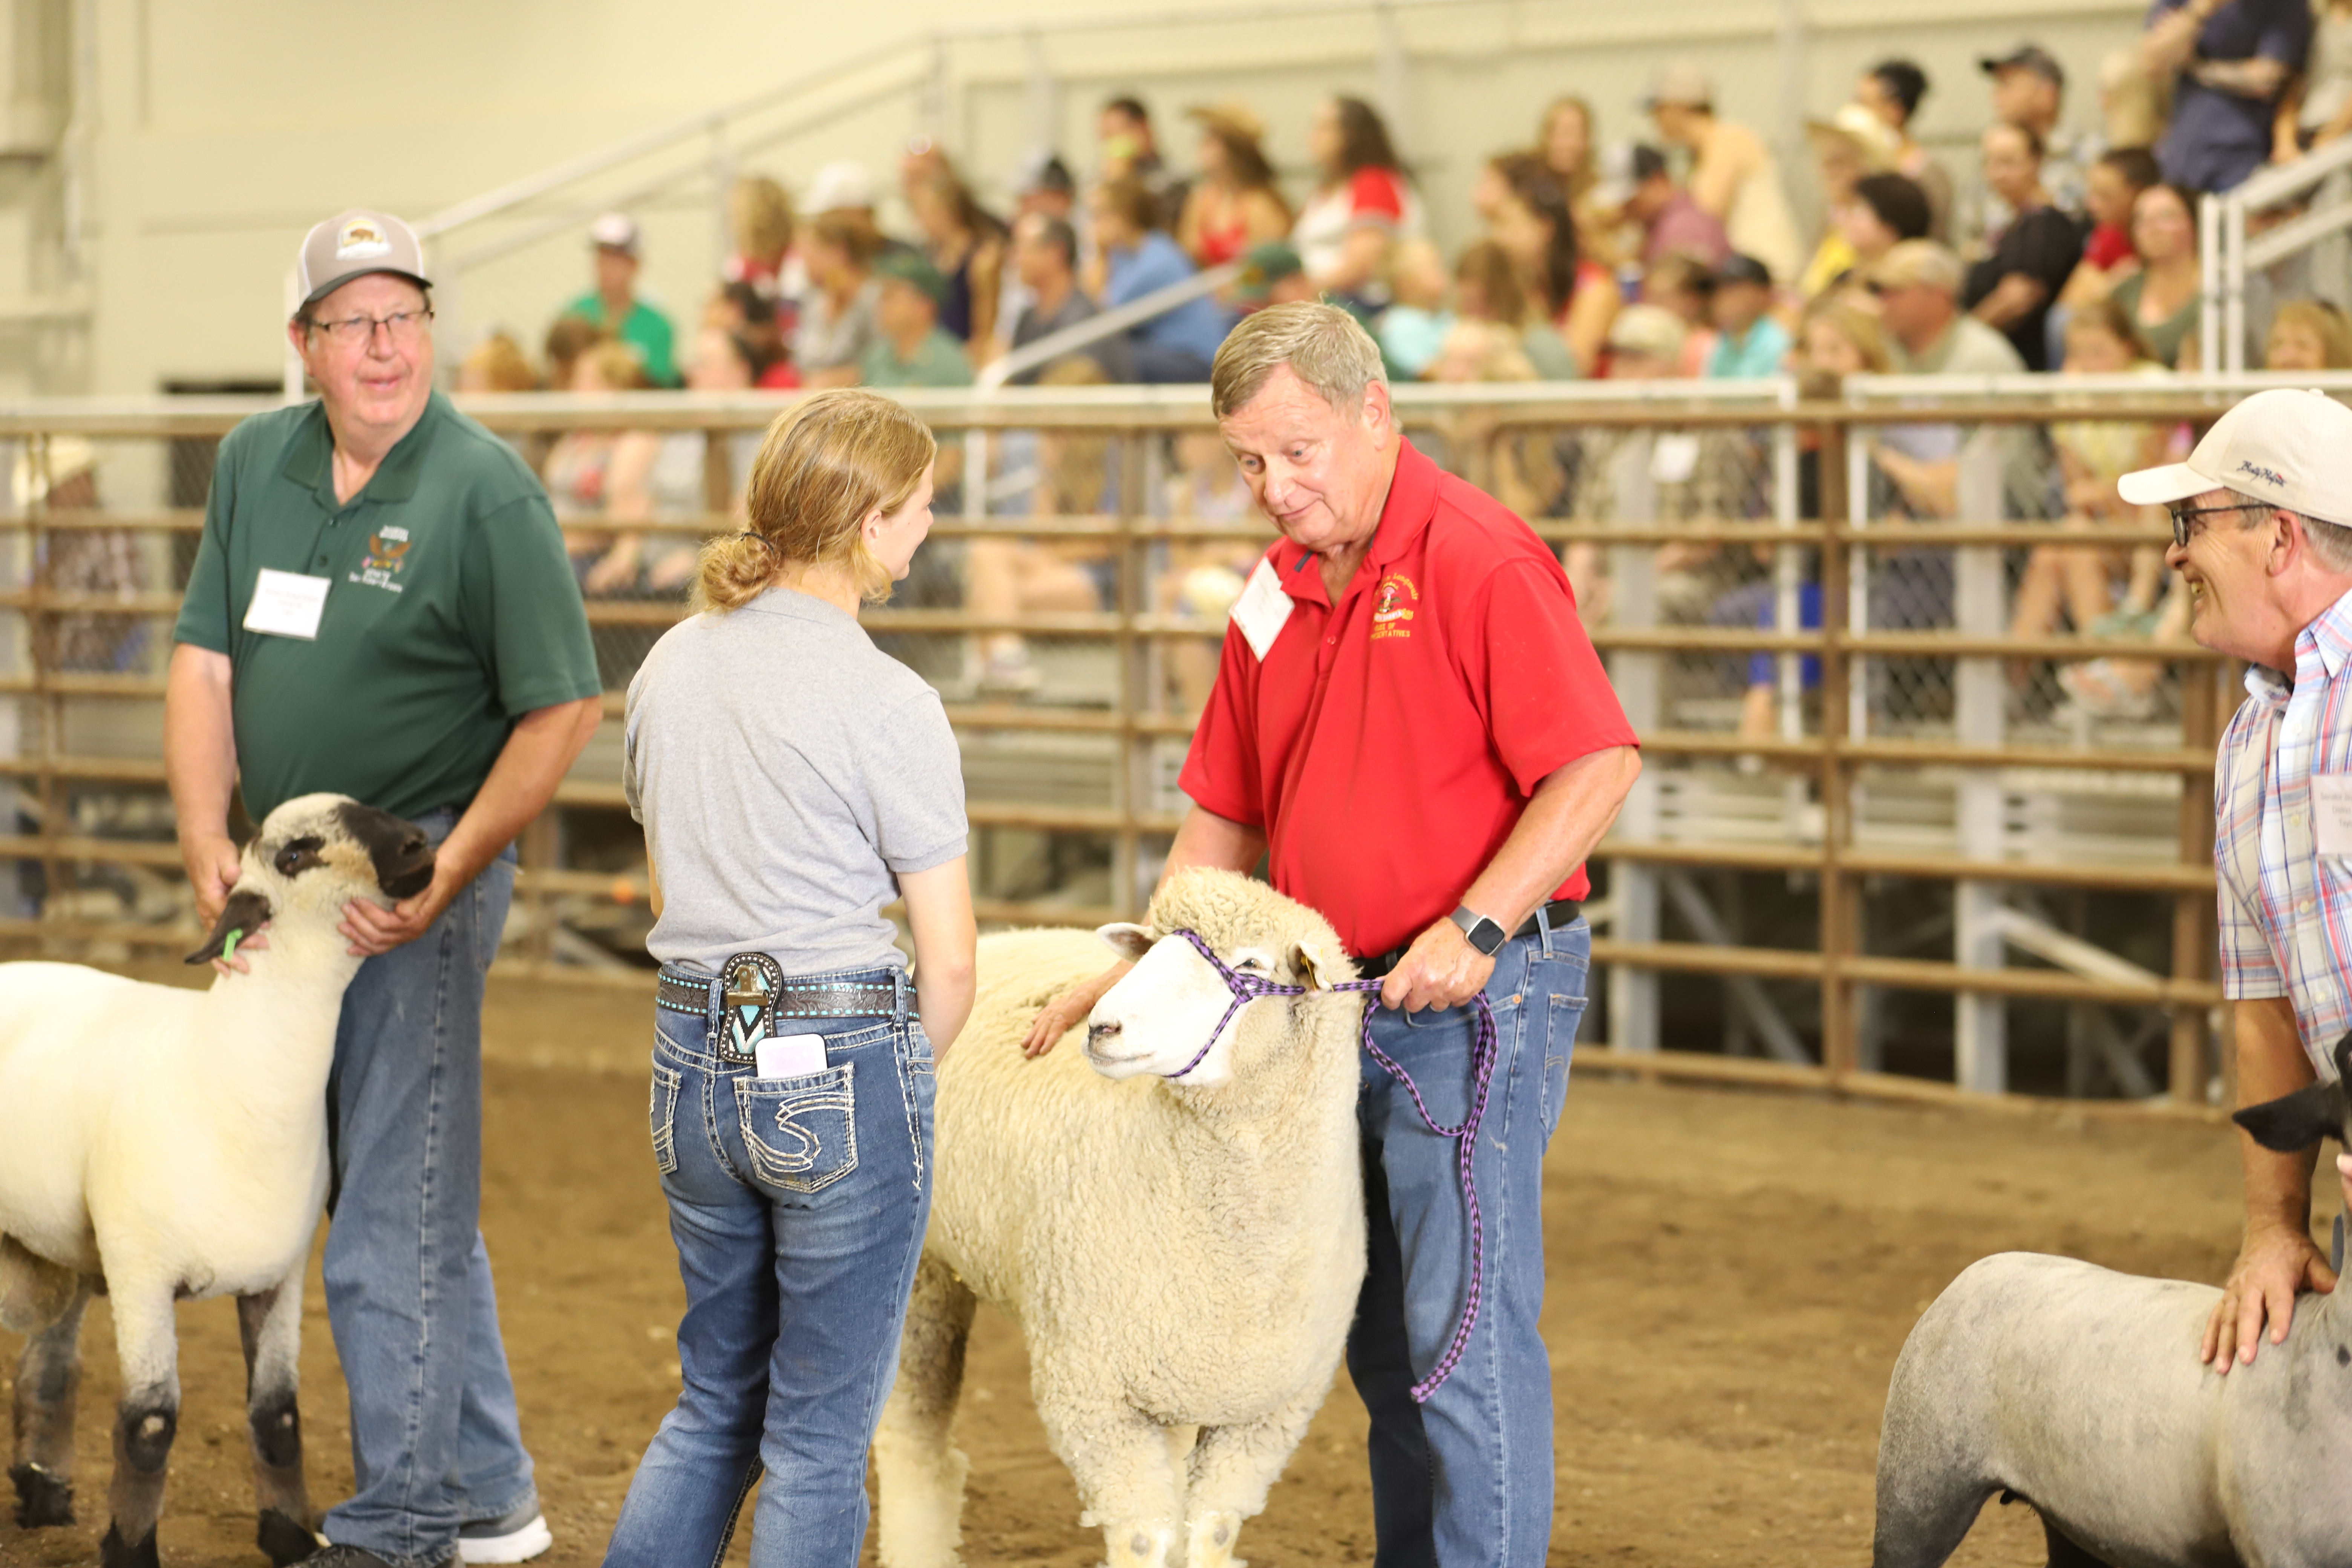 A 4-H'er judges state leaders in the sheep competition during the North Dakota Leaders 4-H Showmanship Contest at the North Dakota State Fair in Minot. (NDSU photo)